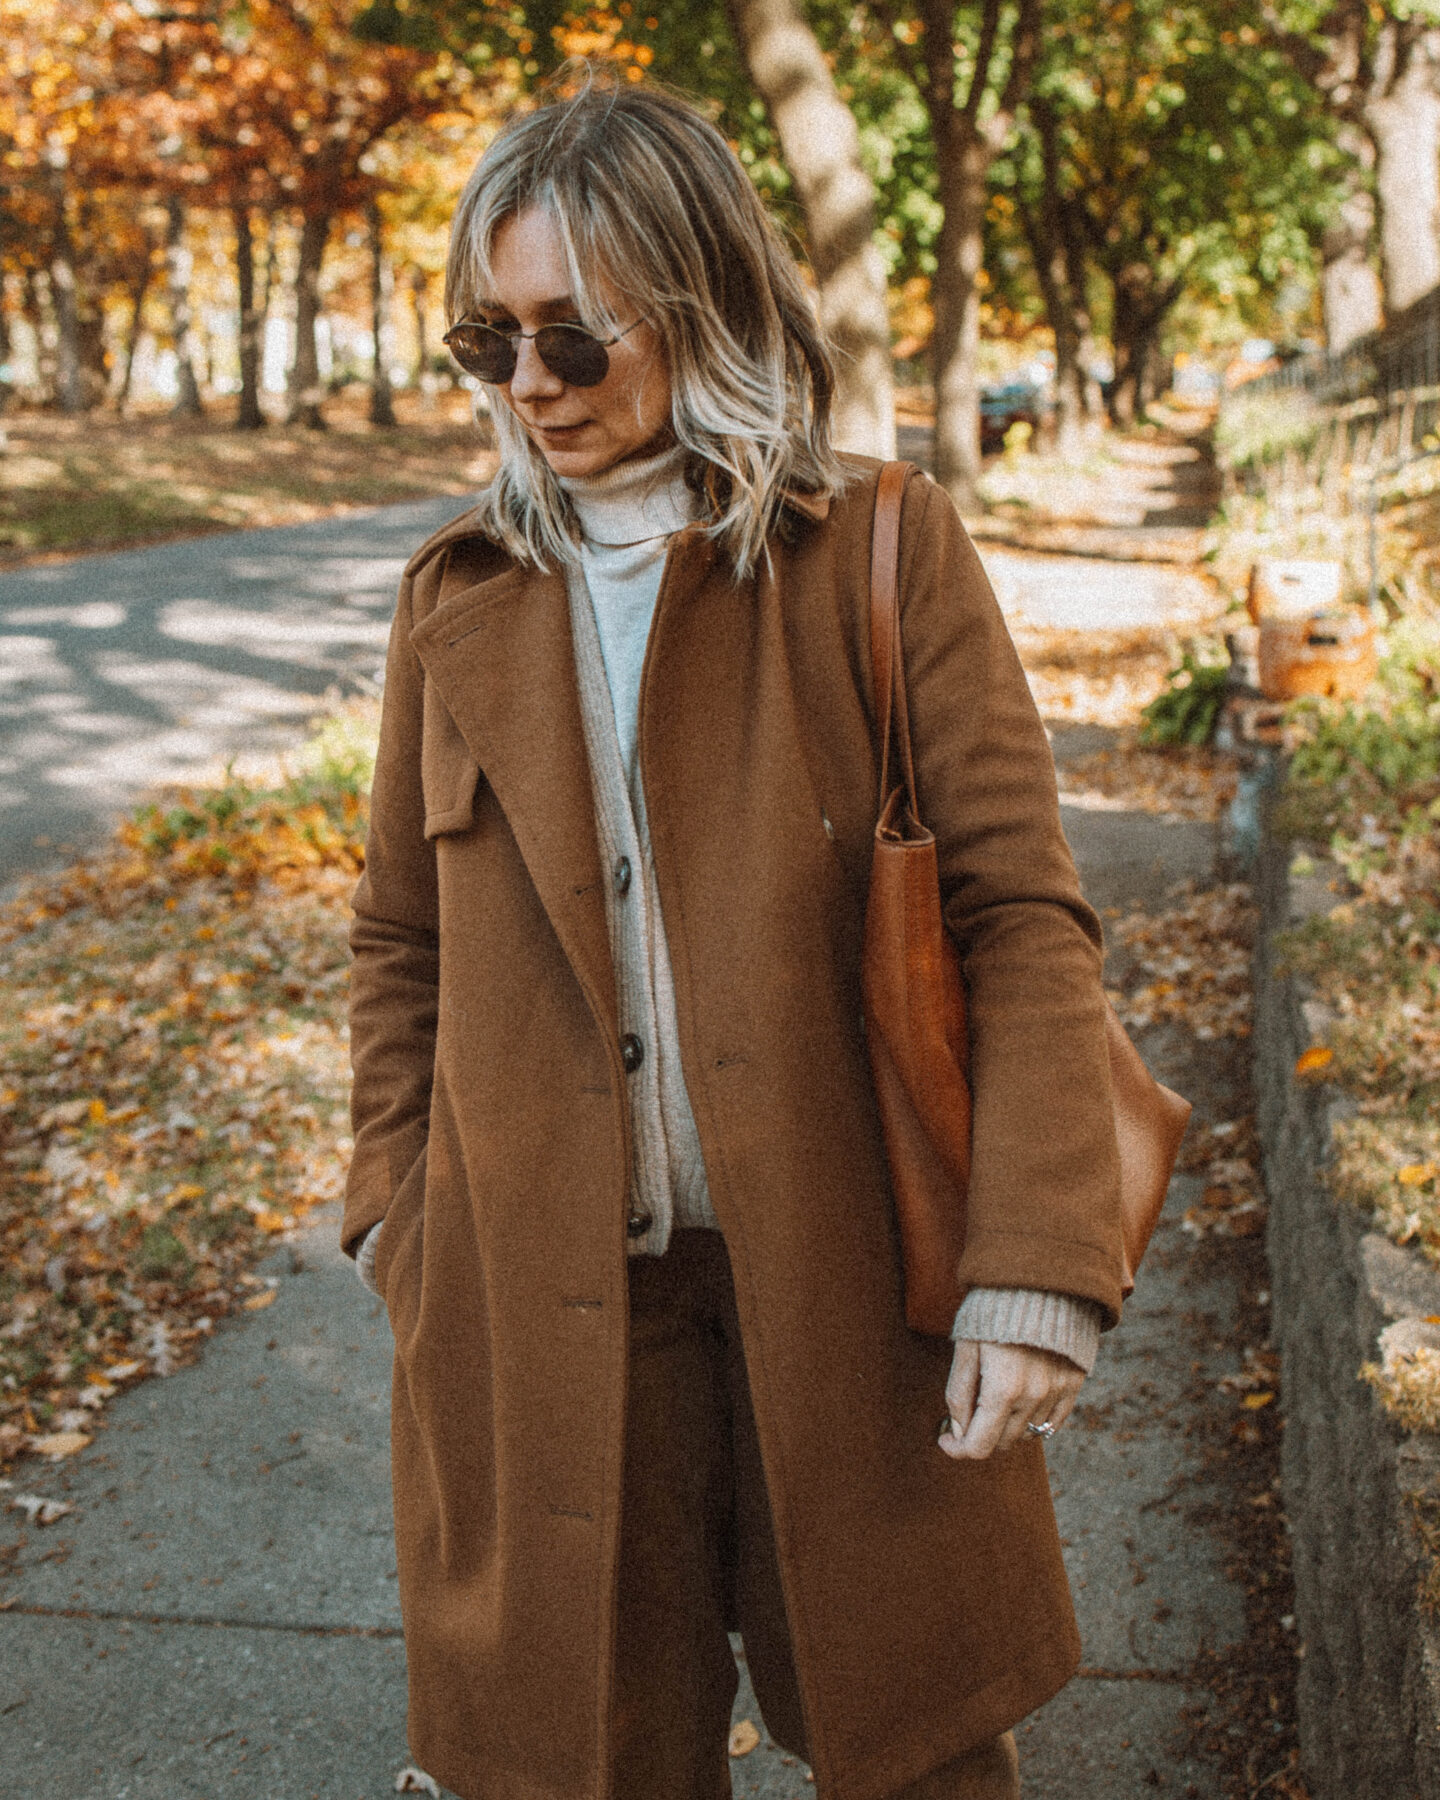 Monochrome Outfit Ideas you can Style for Real Life, Camel Trench Coat